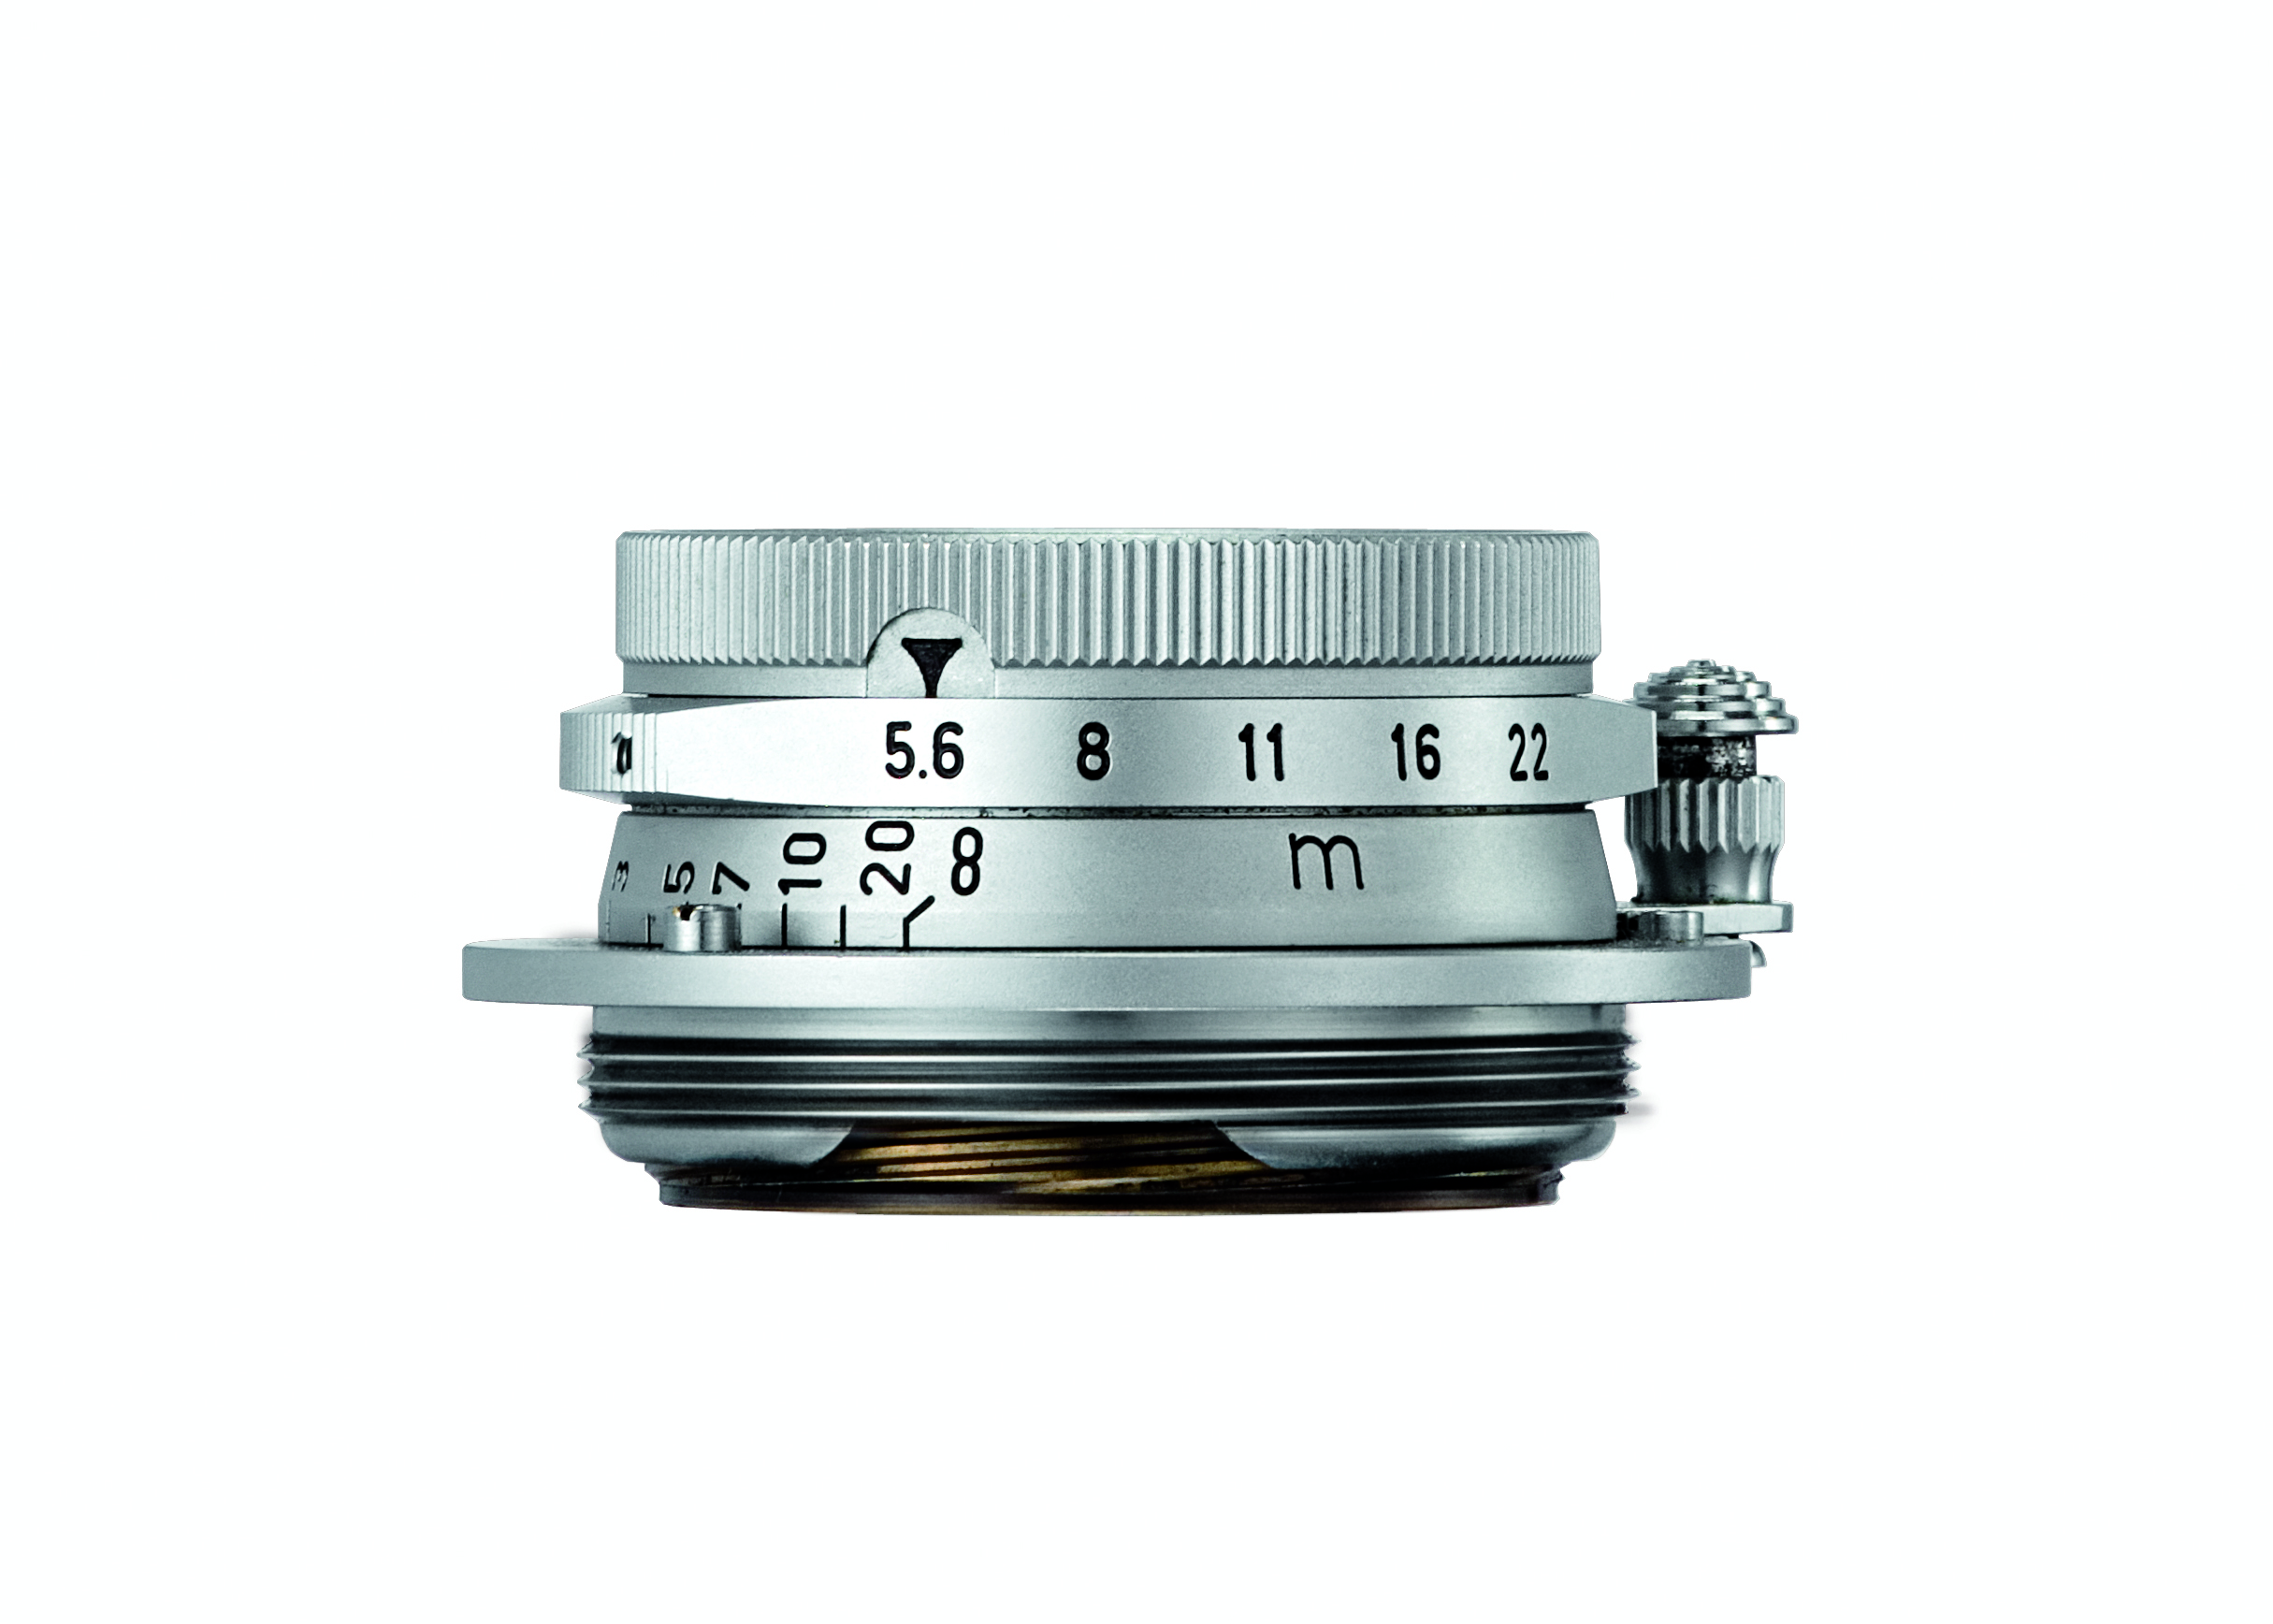 drones legal issues with Leica Goes Old School New 28mm Lens on Al Shabab moreover Leica Debuts New Cl Mirrorless Camera together with Chinas Drones besides Ready Set Reveal Sue Bryces Print Selling Phenomenon also Leica Goes Old School New 28mm Lens.